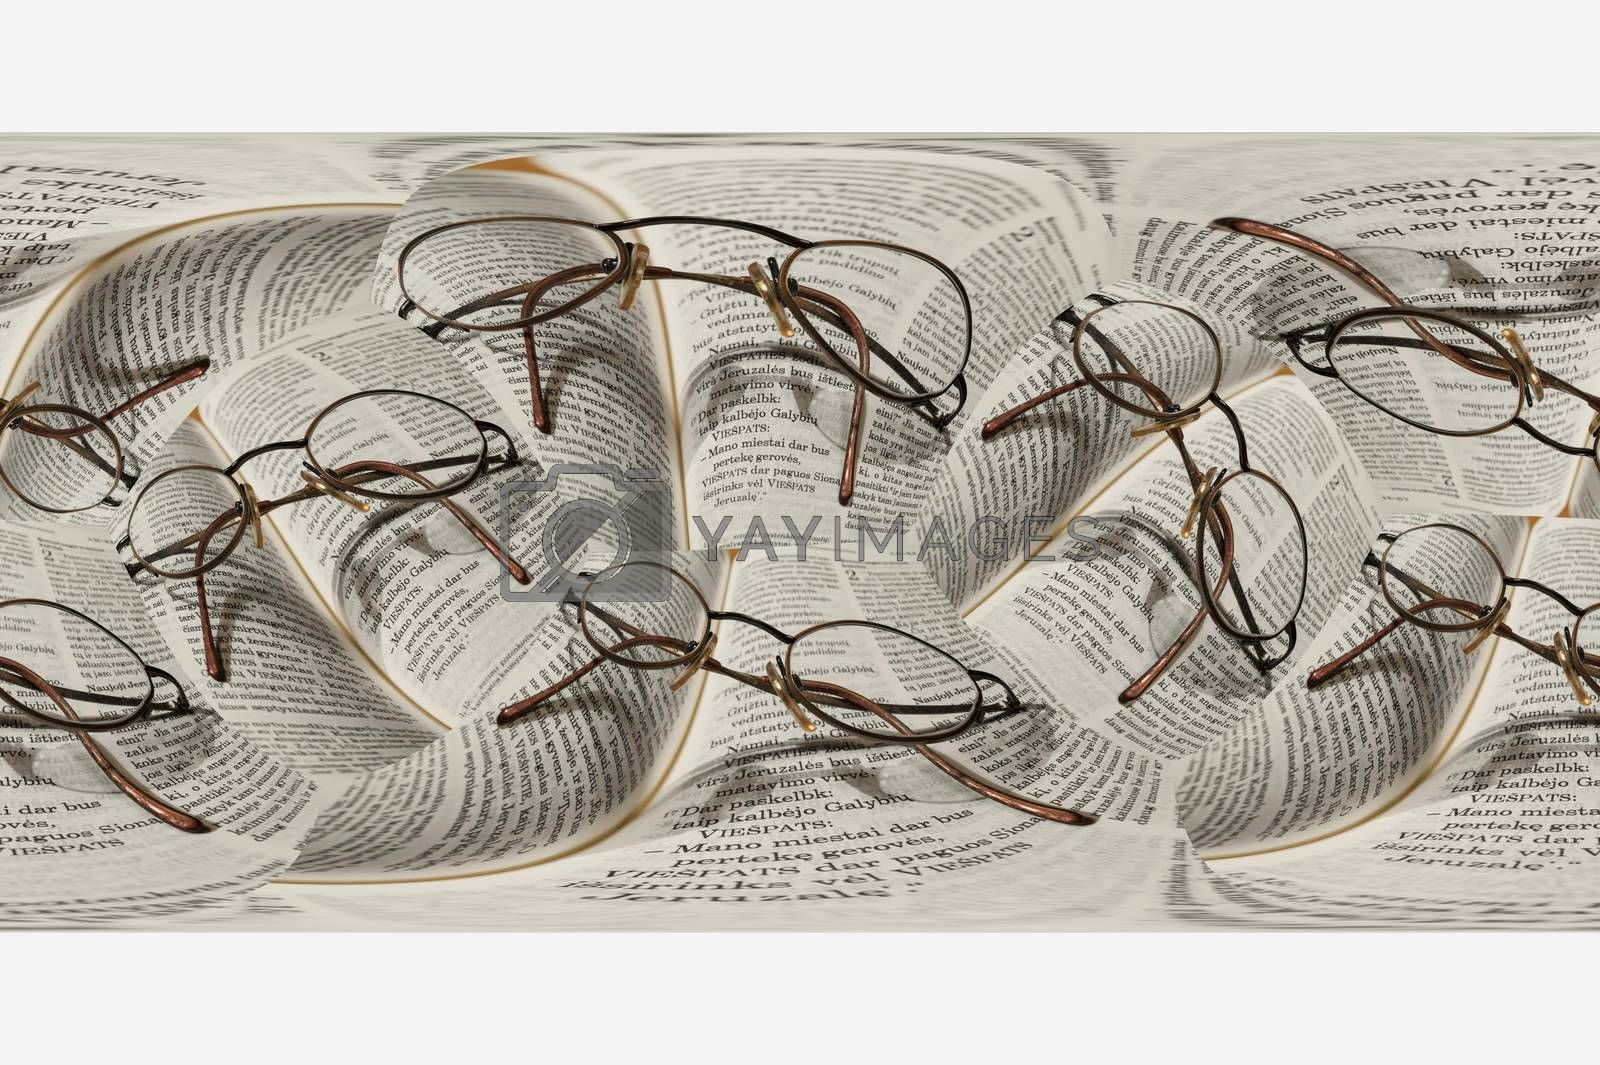 Round glasses lie on the bible in the Swedish language